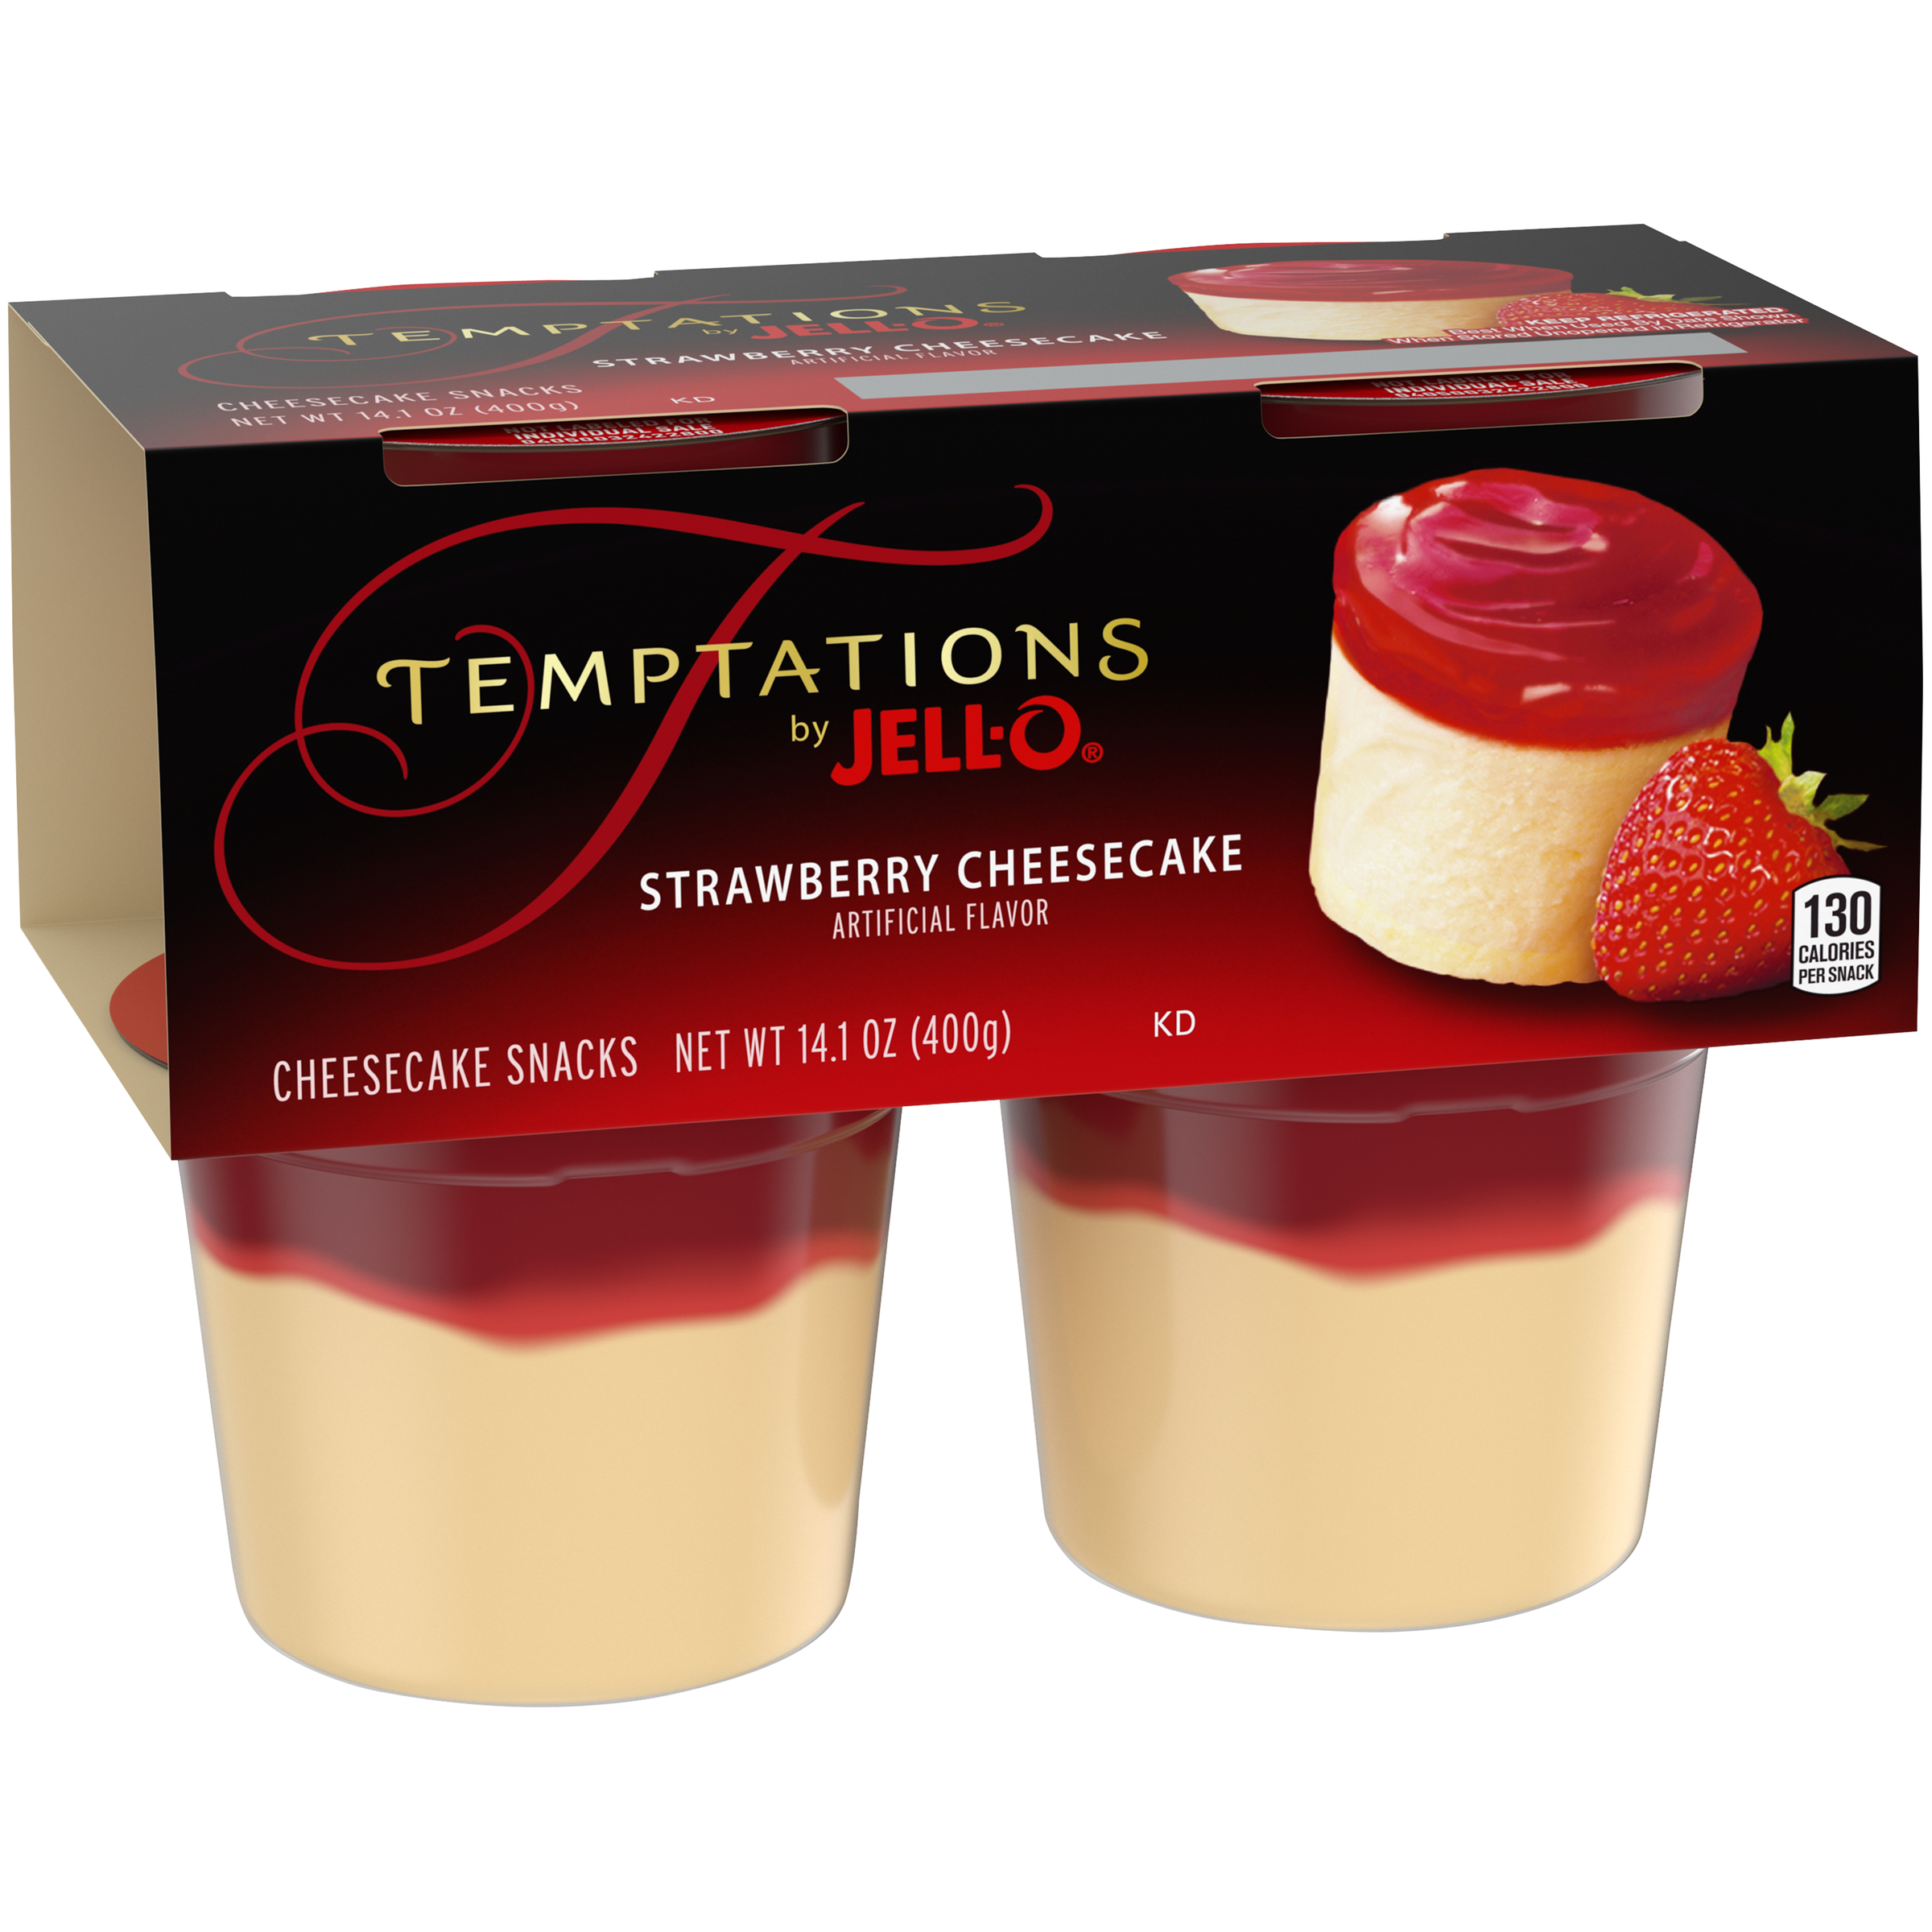 Jell-O Temptations Ready to Eat Strawberry Cheesecake Pudding Cups, 4 ct - 14.1 oz Package